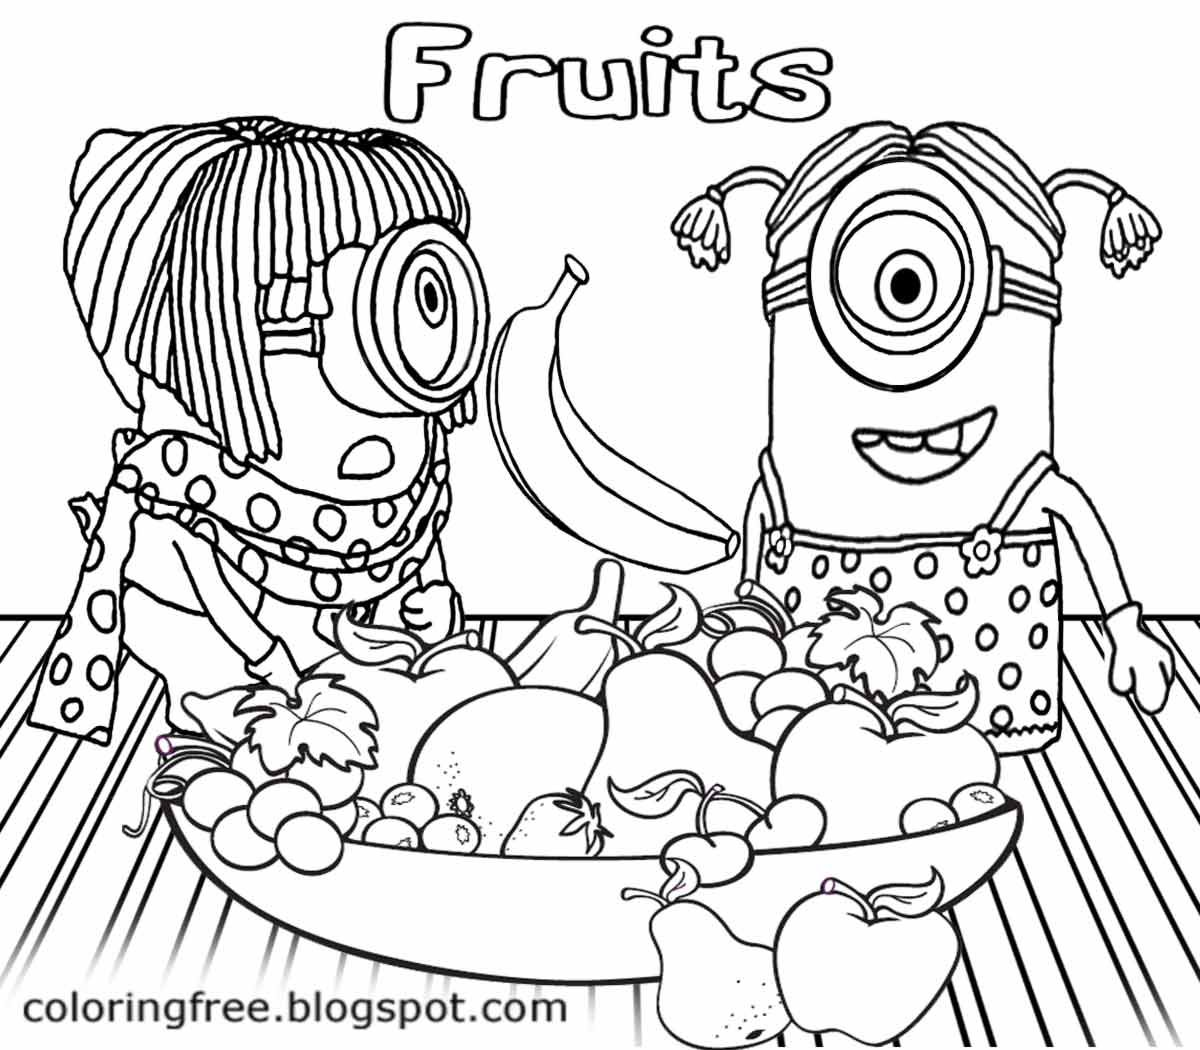 Black And White Drawing Flying Banana Orange And Apple Bowl Of Fruit Minion Banana Coloring Minion Coloring Pages Monster Coloring Pages Minions Coloring Pages